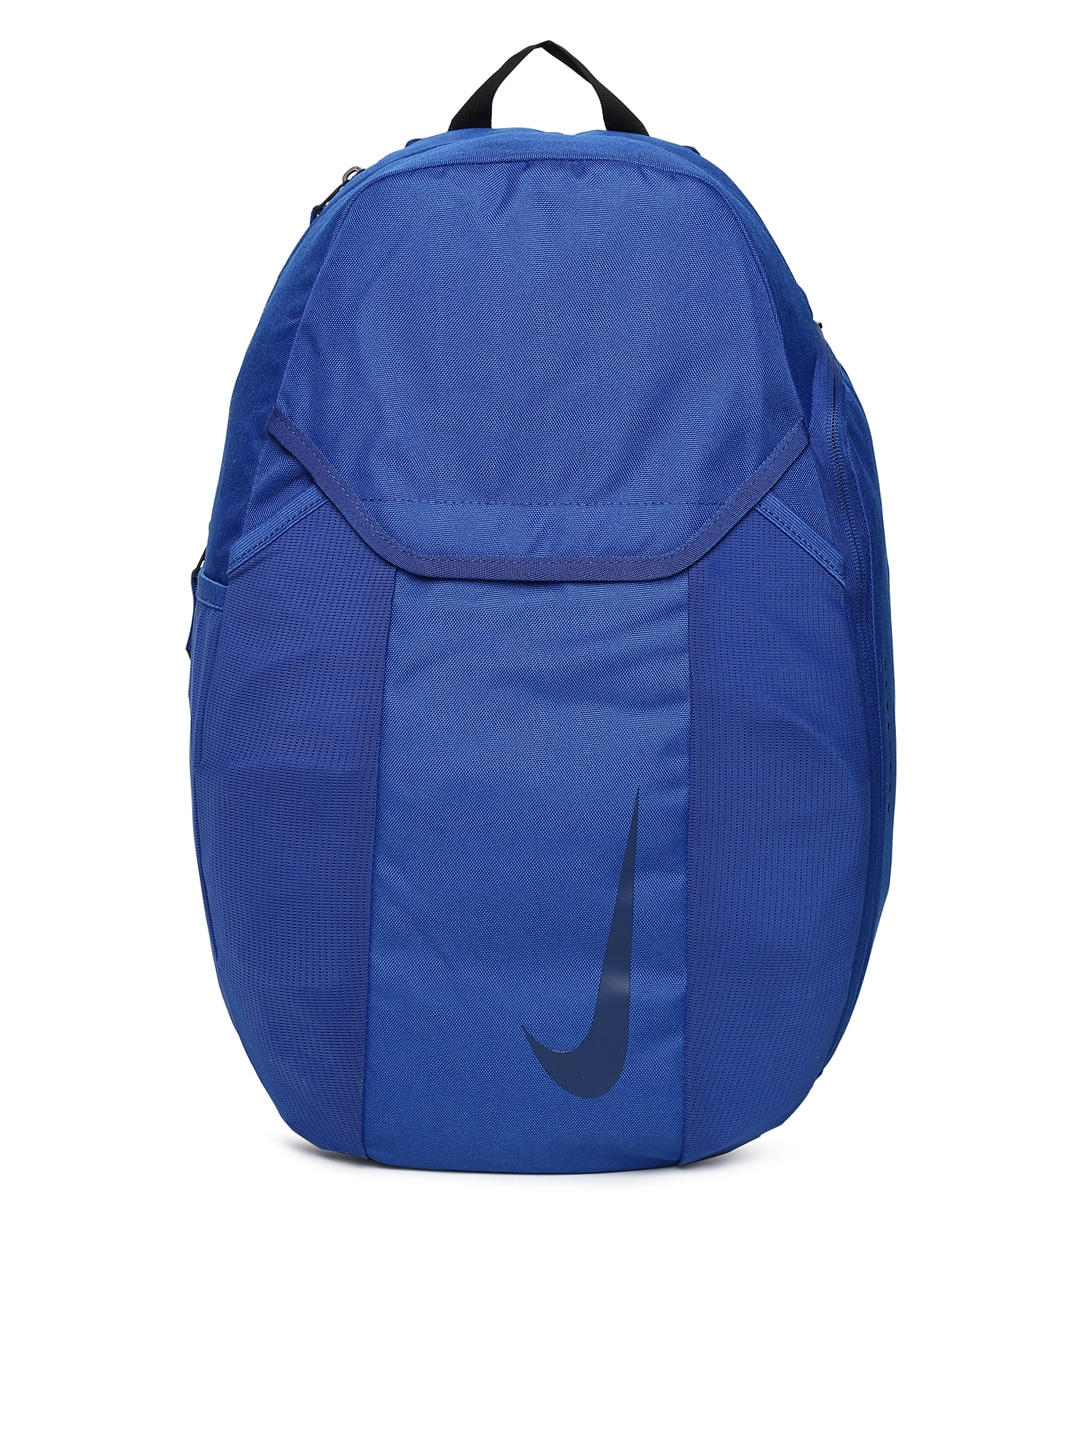 4fcd1cb0a2 Nike Bags - Buy Nike Bag for Men